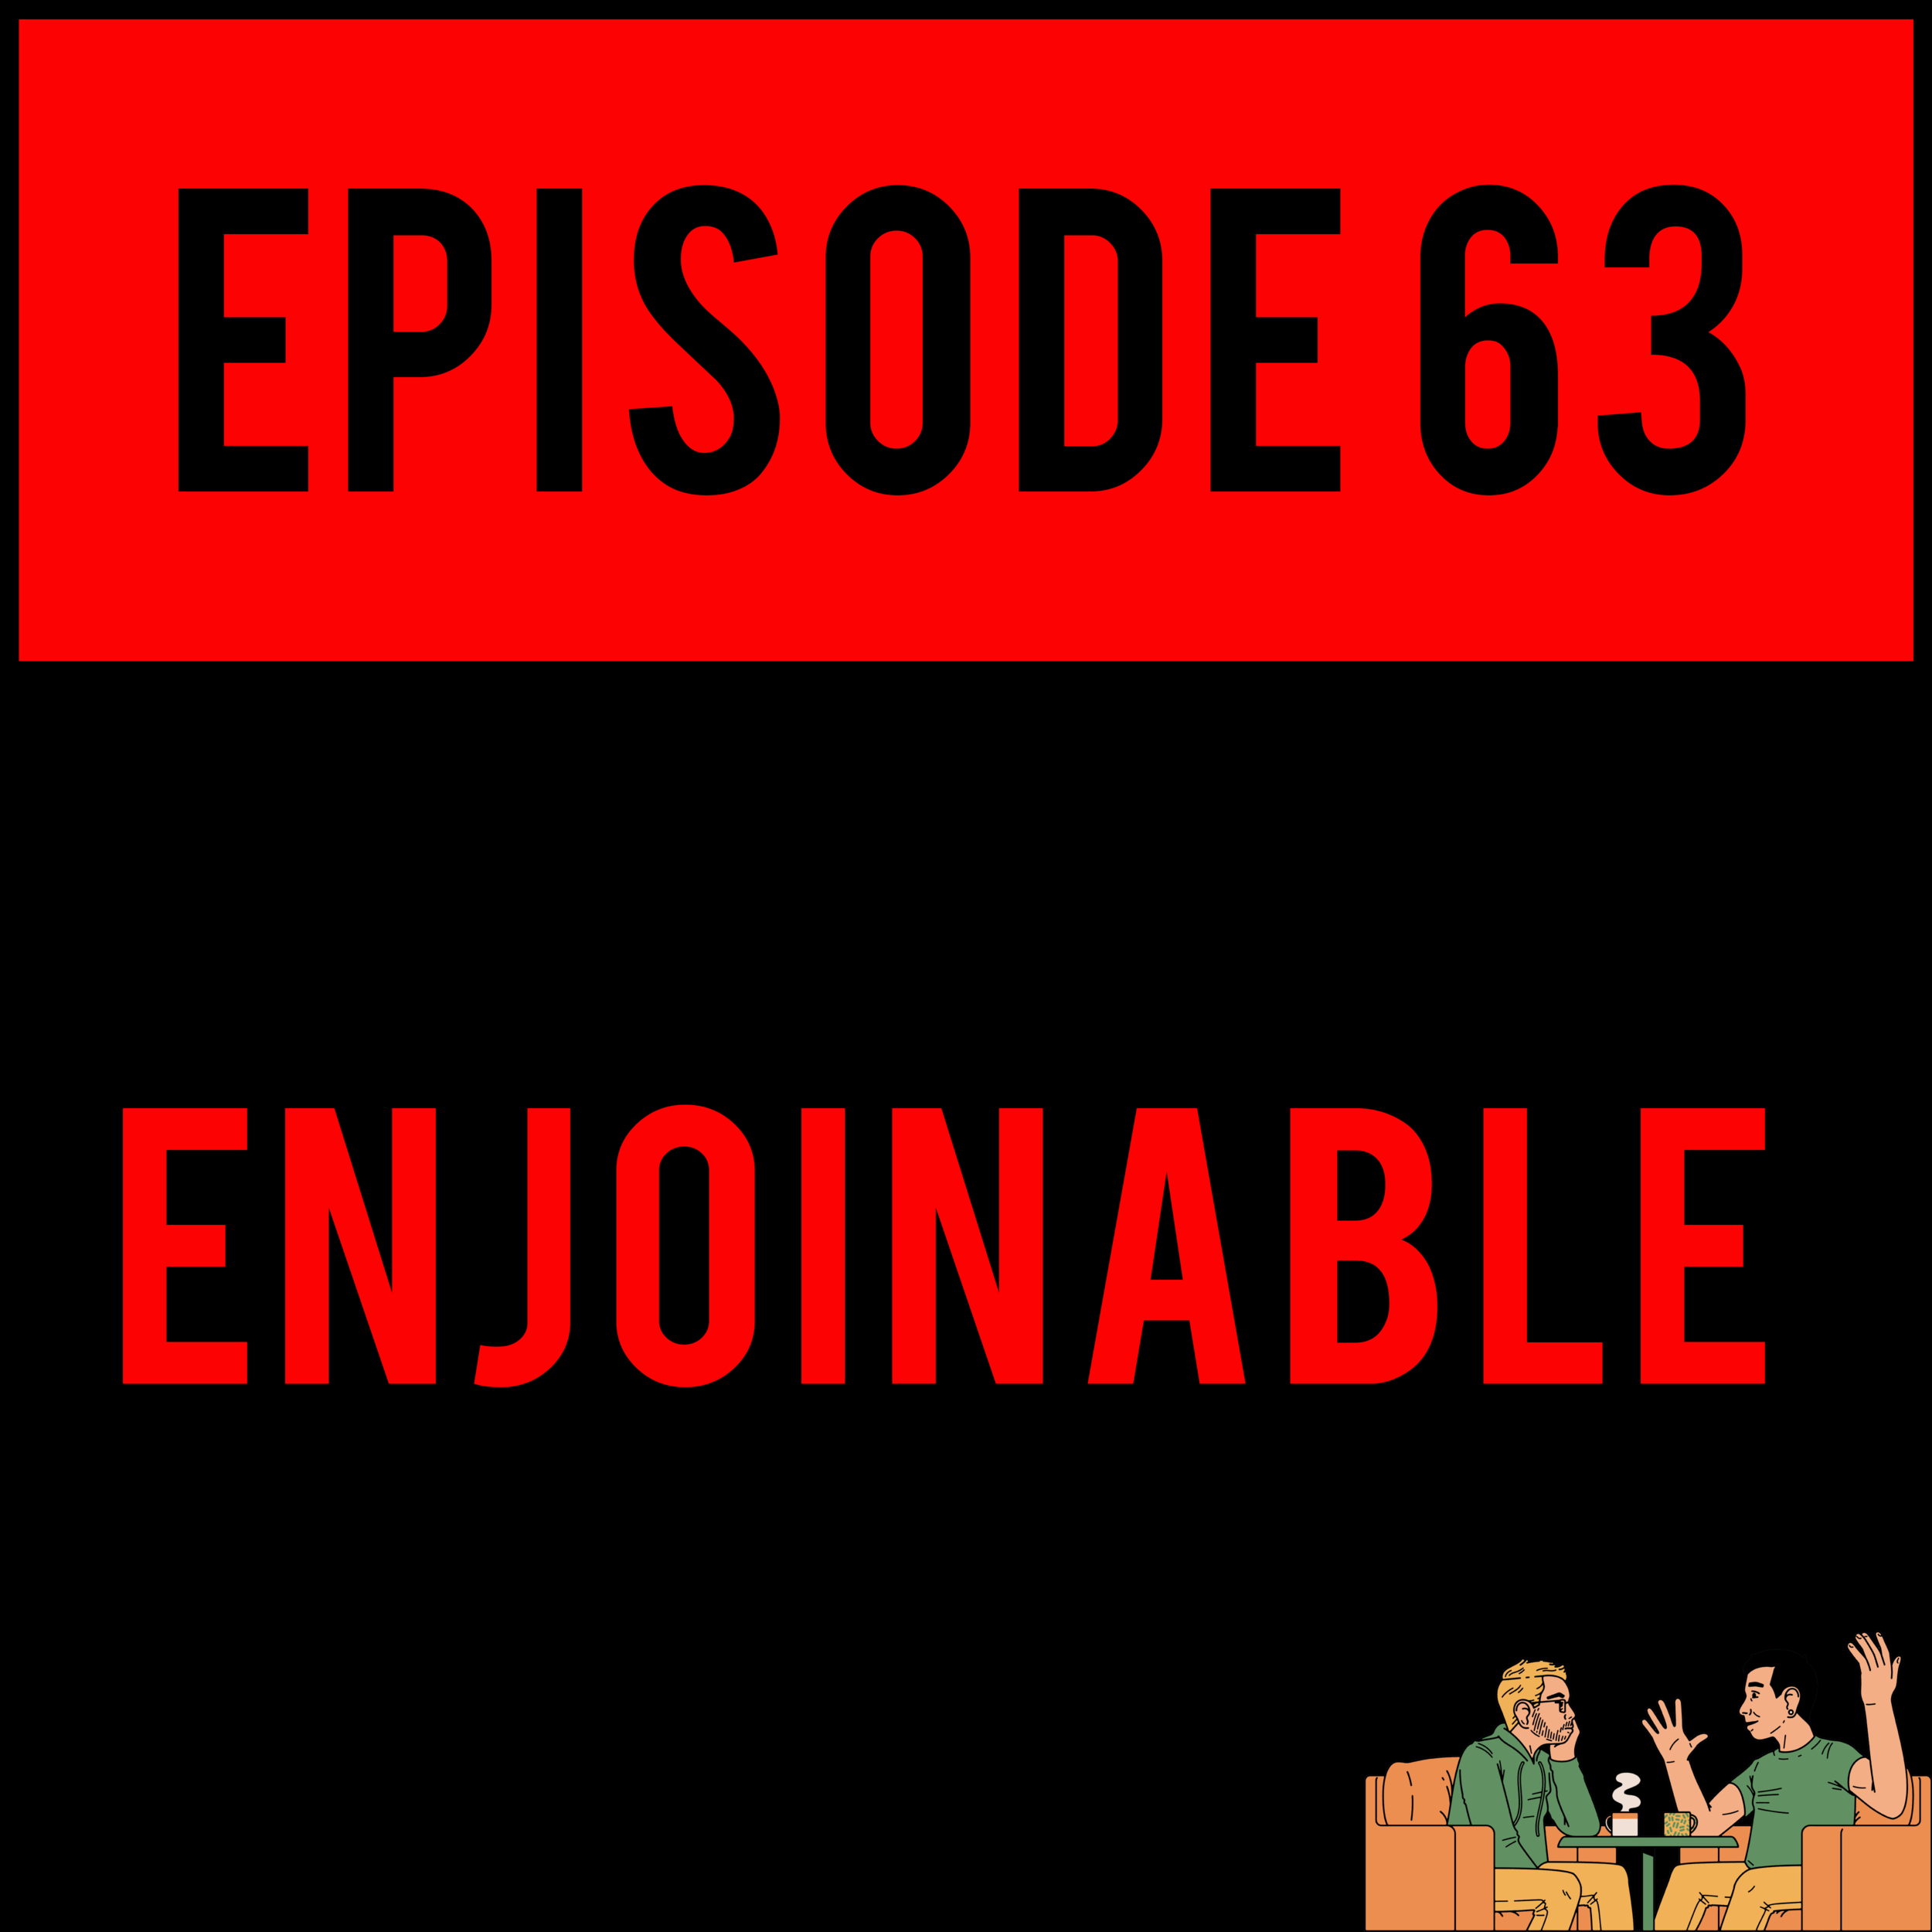 EPISODE 63 - It's ya bois, alone and naked, as they started out. Alex gets sentimental with a CLASSIC video game and Justyn makes a purchase bigger than he's worth. ENJOINABLE - EPISODE 63 is going to AUTOPILOT its way straight into your hearts.